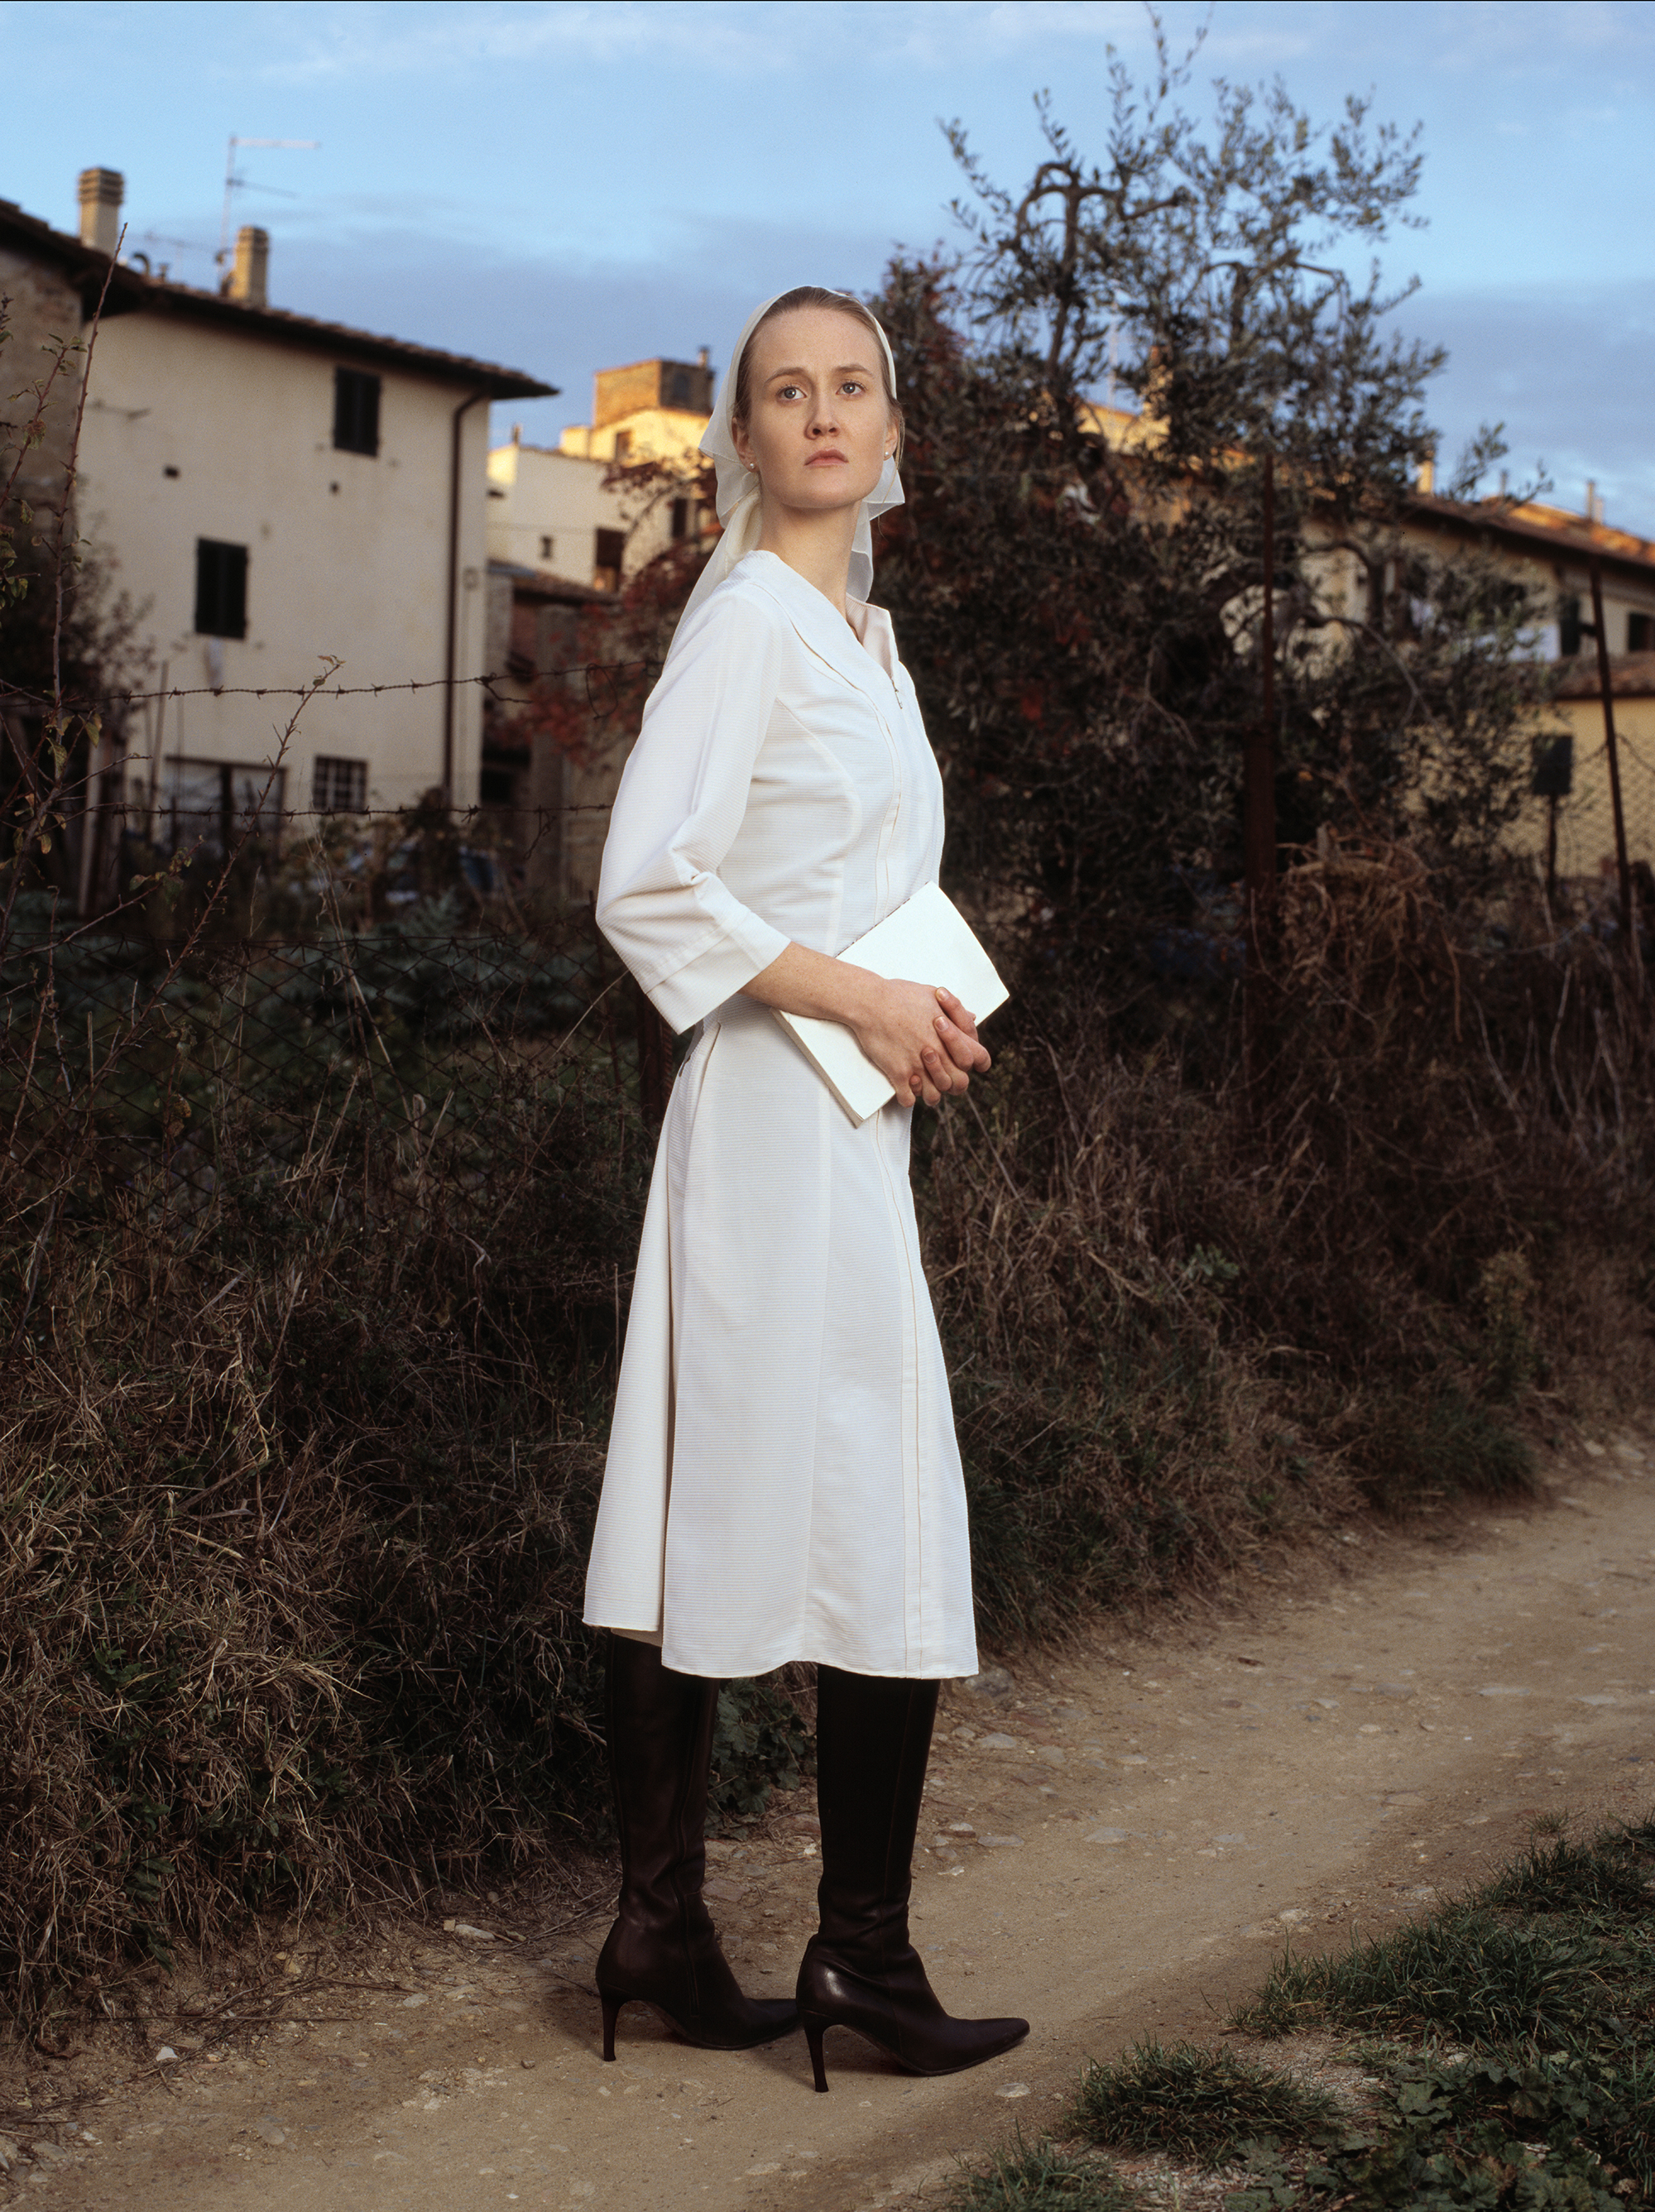 Post-War Italy: Nurse, 2007